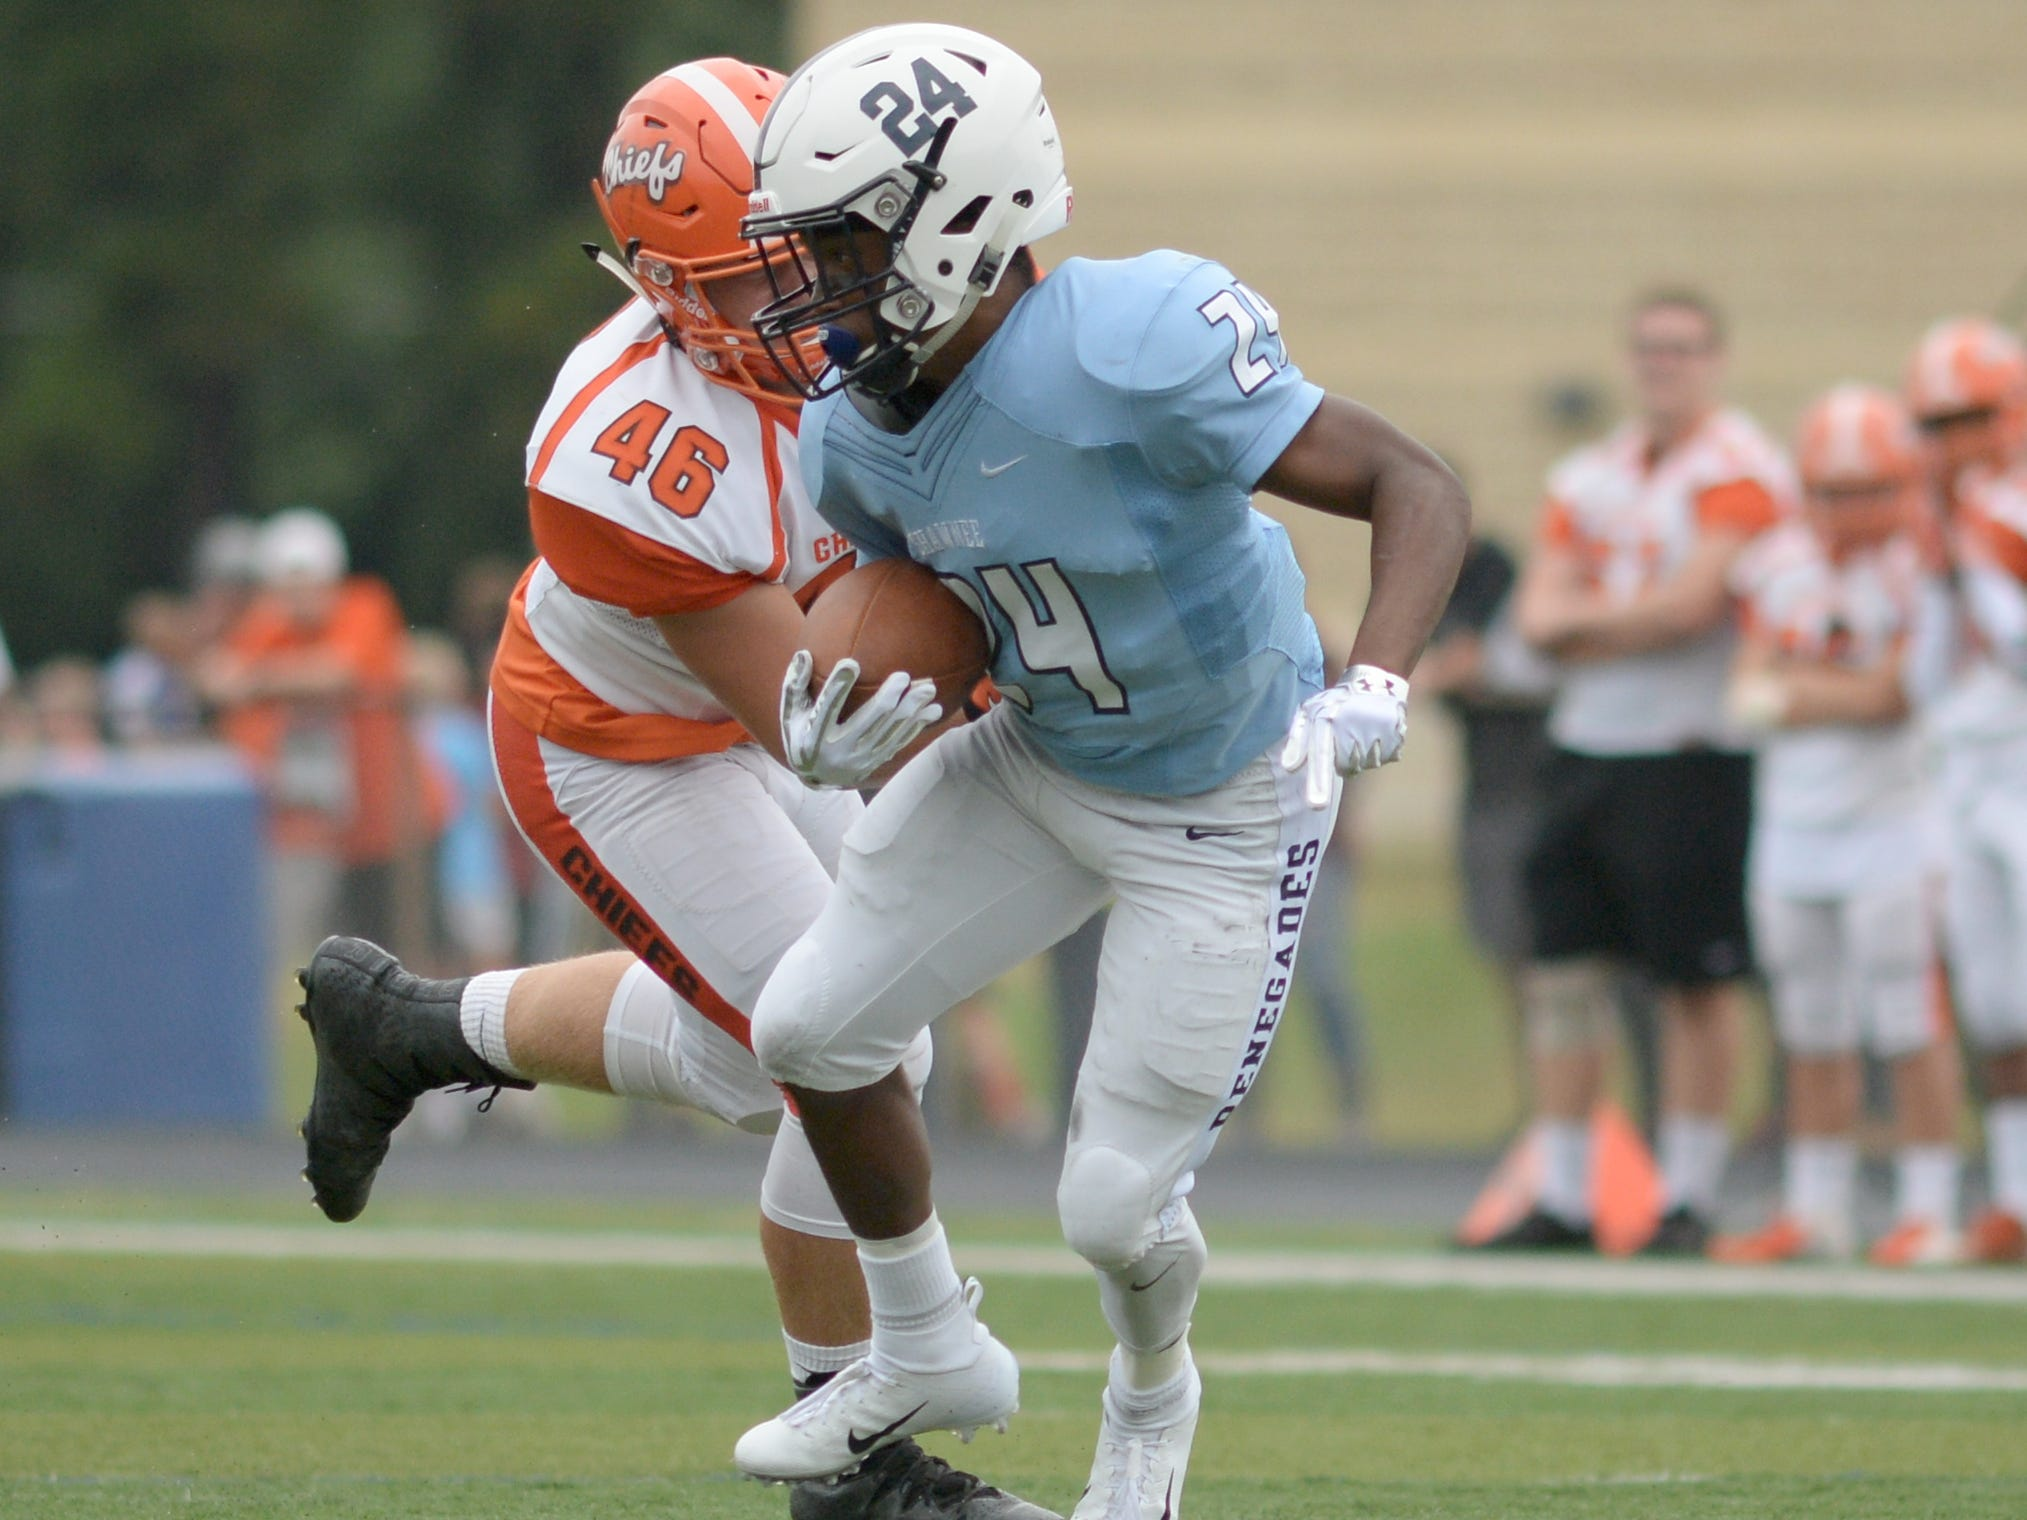 Shawnee's Kyzir Wall carries the ball during Saturday's football game against Cherokee at Shawnee High School,  Sept. 8, 2018.